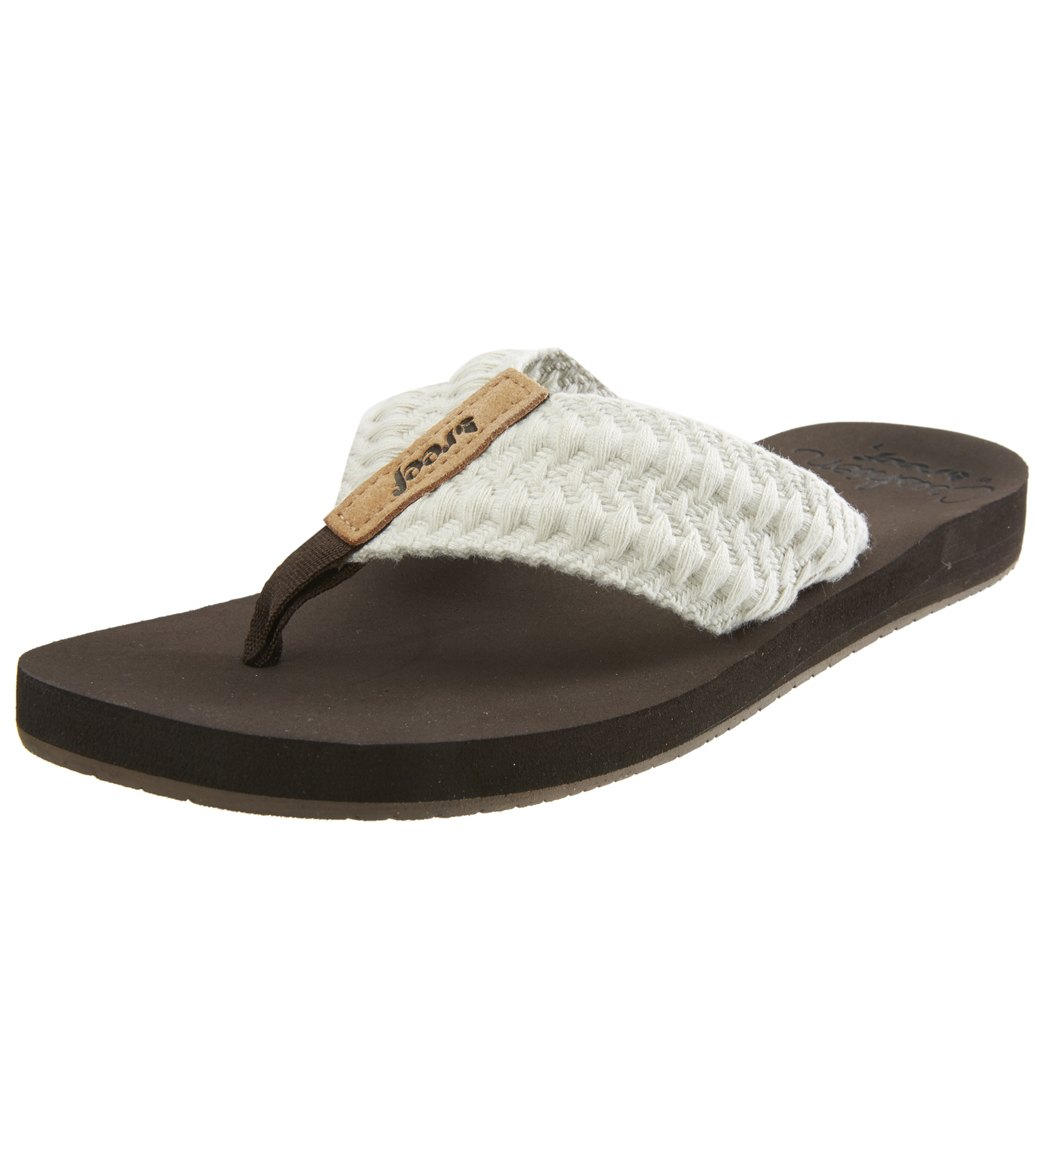 dfde40cdd Reef Women s Cushion Threads Flip Flop at SwimOutlet.com